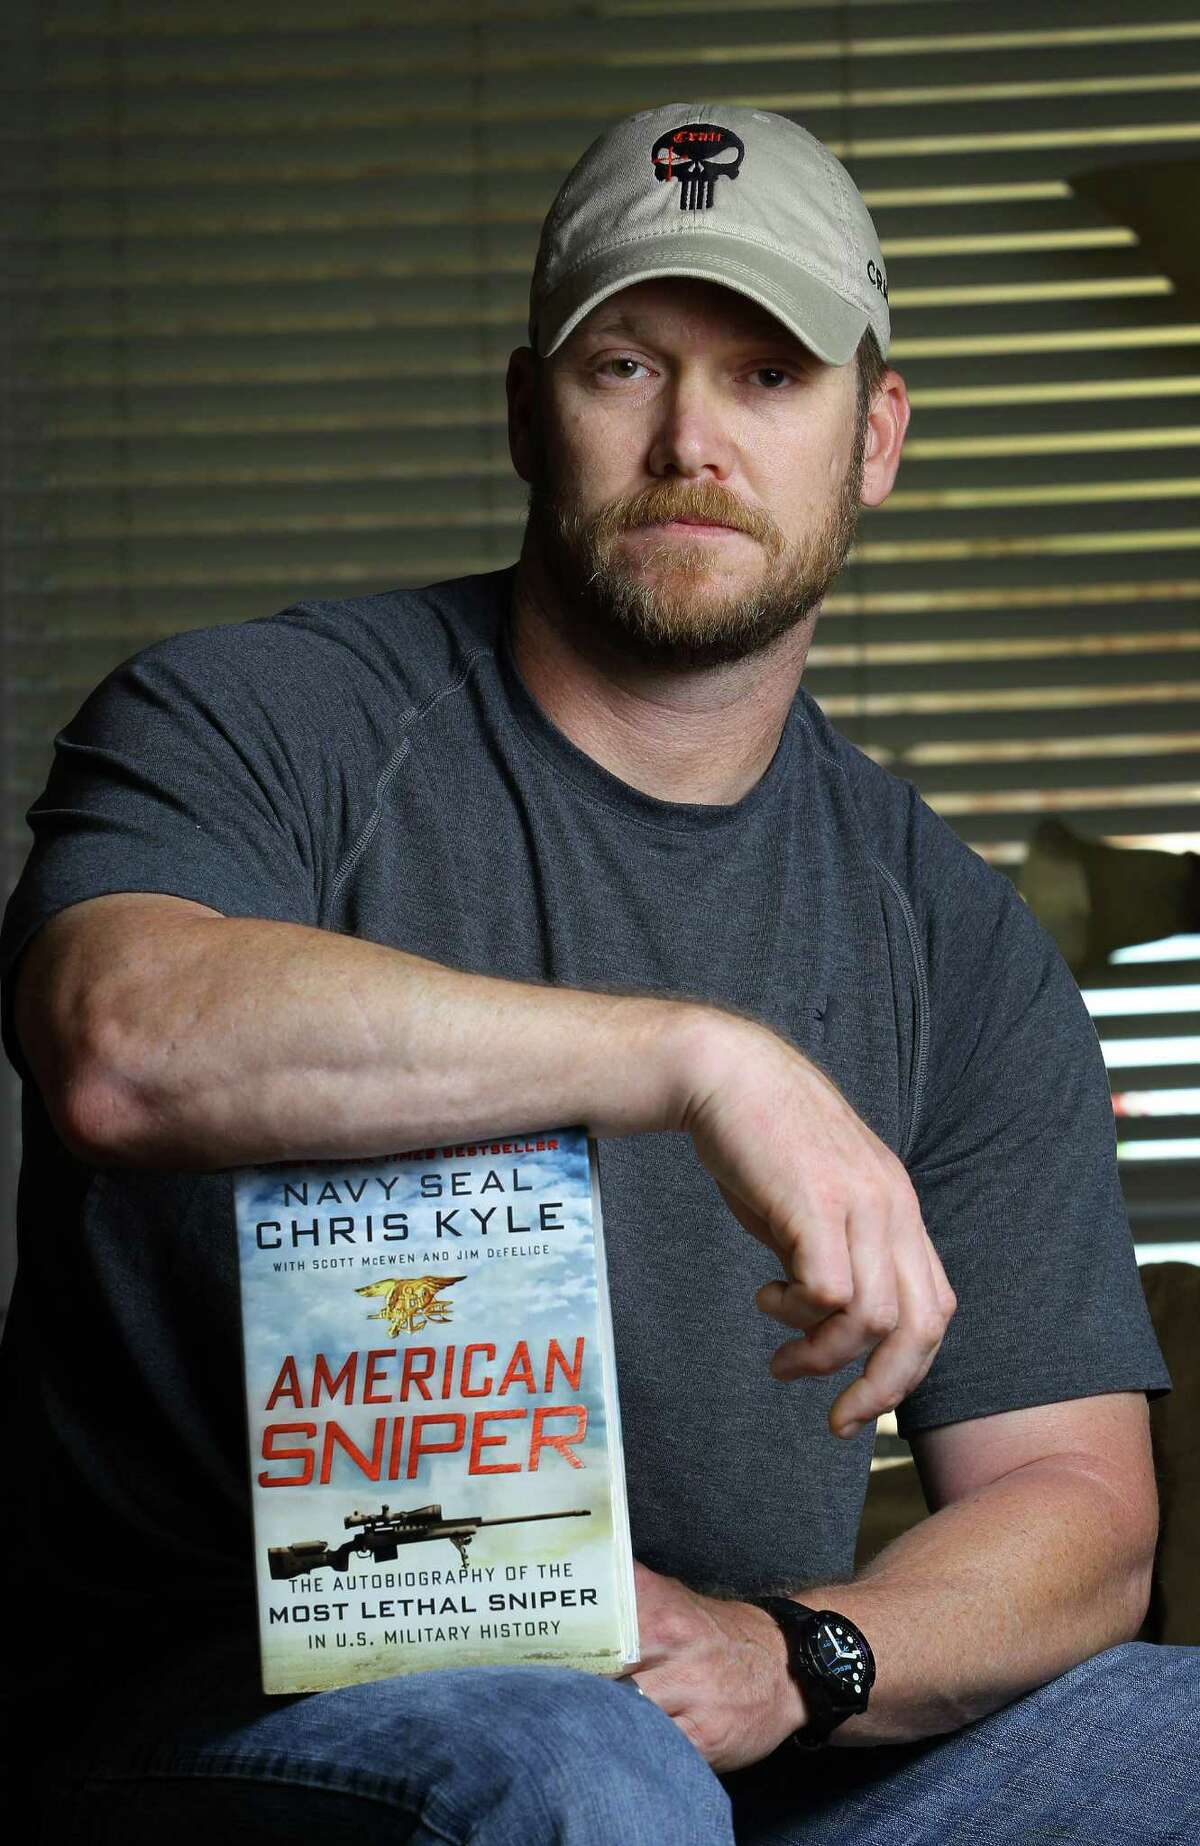 """In this April 6, 2012 file photo, Chris Kyle, a former Navy SEAL and author of the book """"American Sniper,"""" is shown in Midlothian, Texas. """"American Sniper,"""" a film based on Kyle's memoir, has been nominated for six Oscars. See photos of other 2015 Academy Award nominees."""